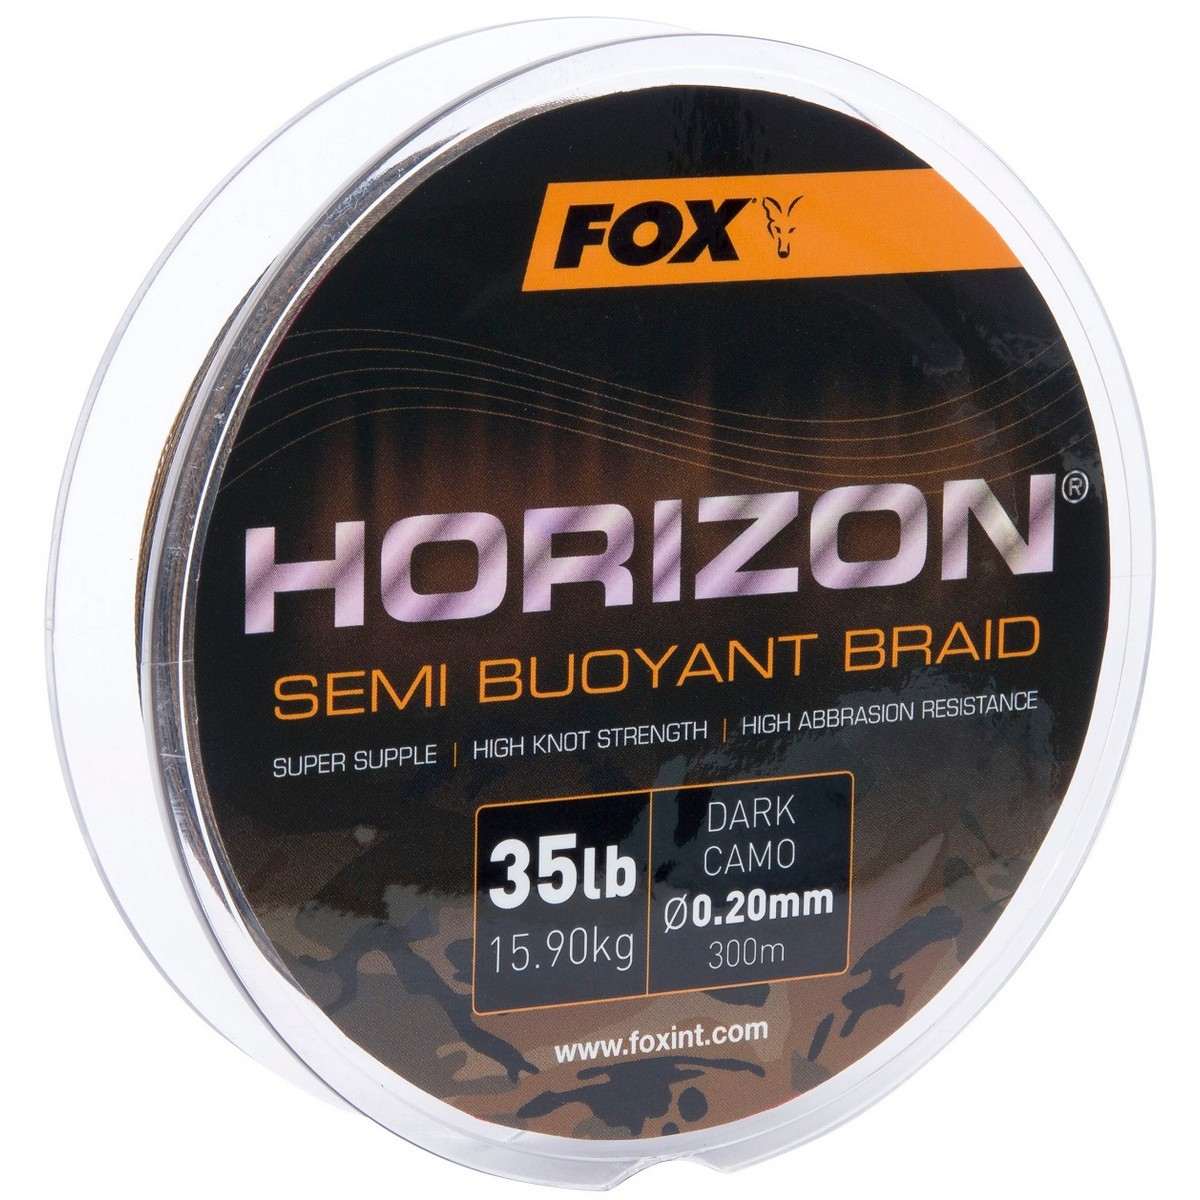 Риболовно влакно Fox Horizon Semi Buoyant Dark Camo Braid 300m